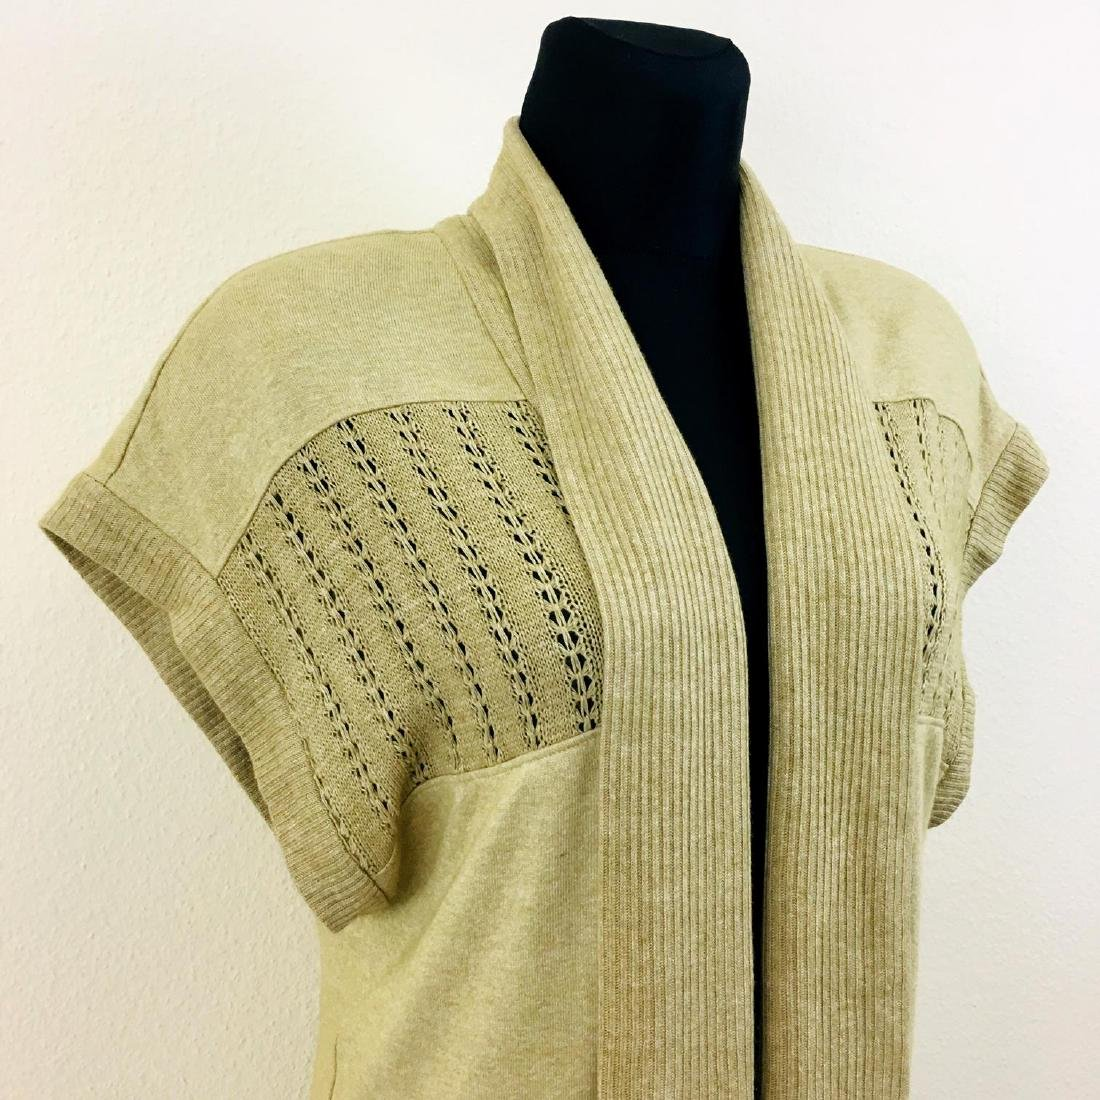 Women's Creation Charmante Wool Blend Cardigan Sweater - 3